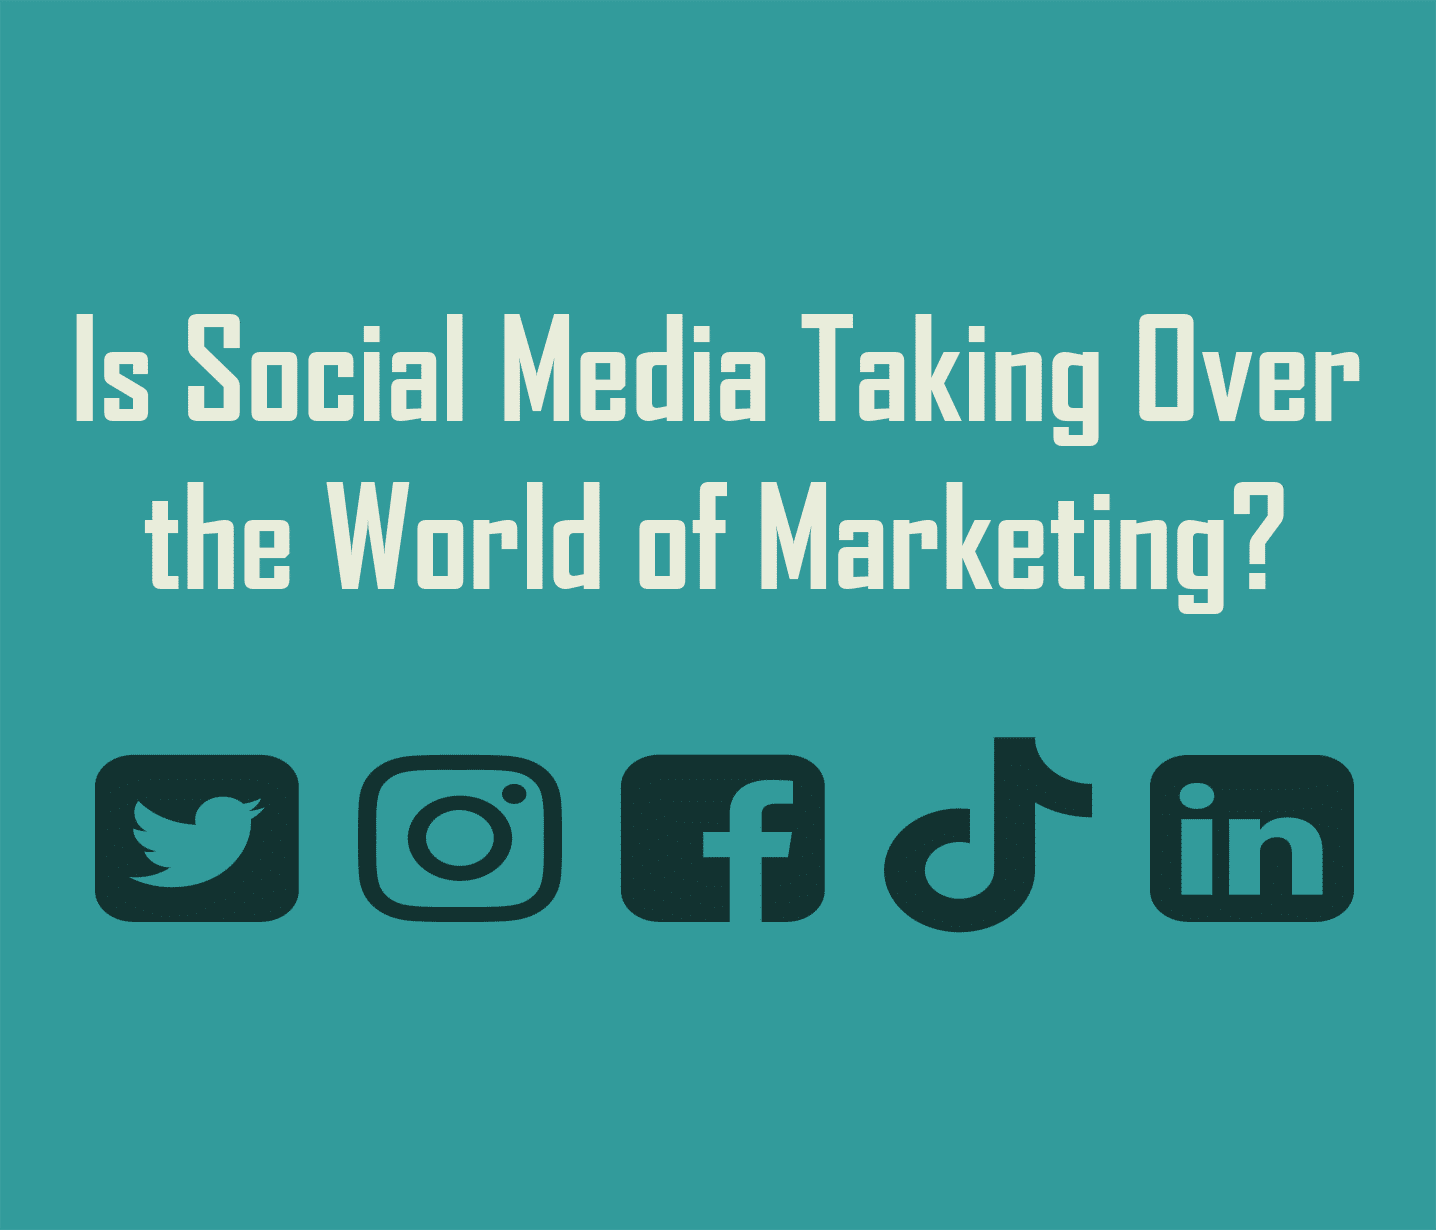 Is Social Media Taking Over the Word of Marketing?